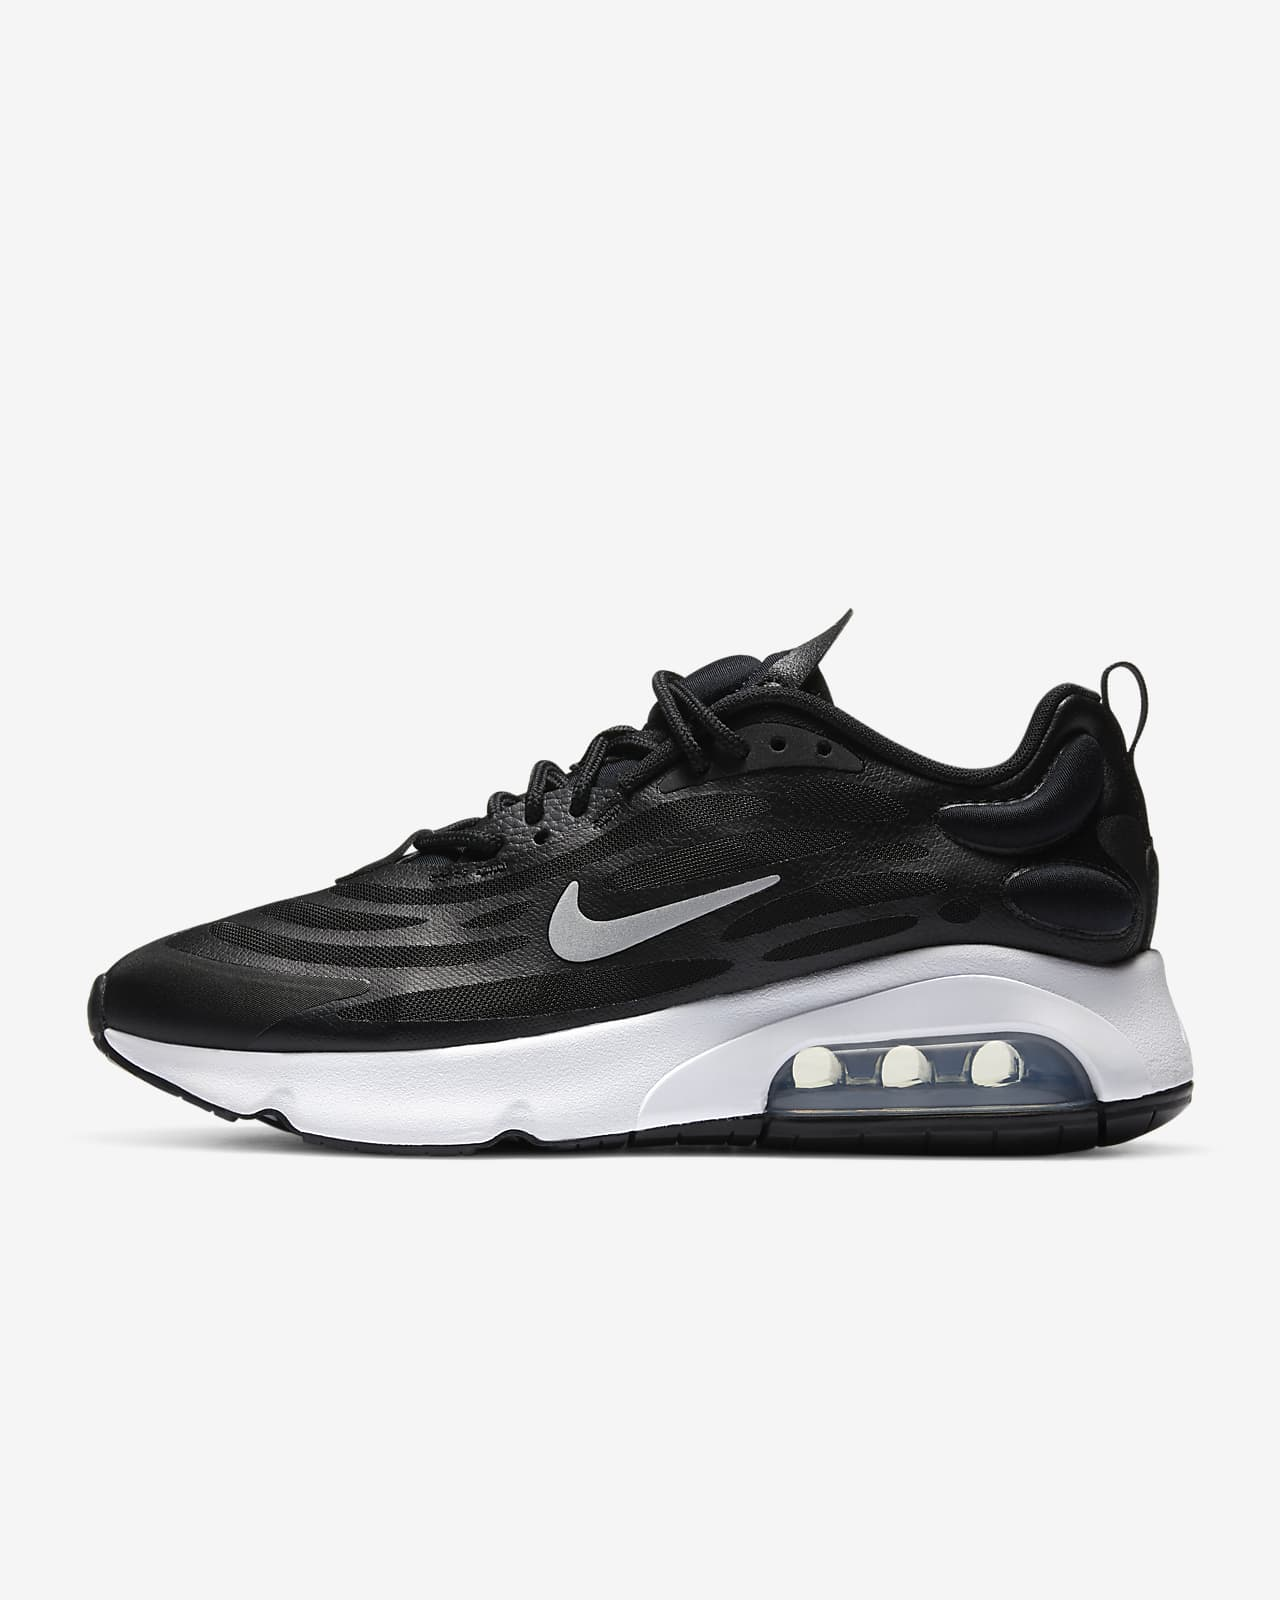 Nike Air Max Exosense Women's Shoe